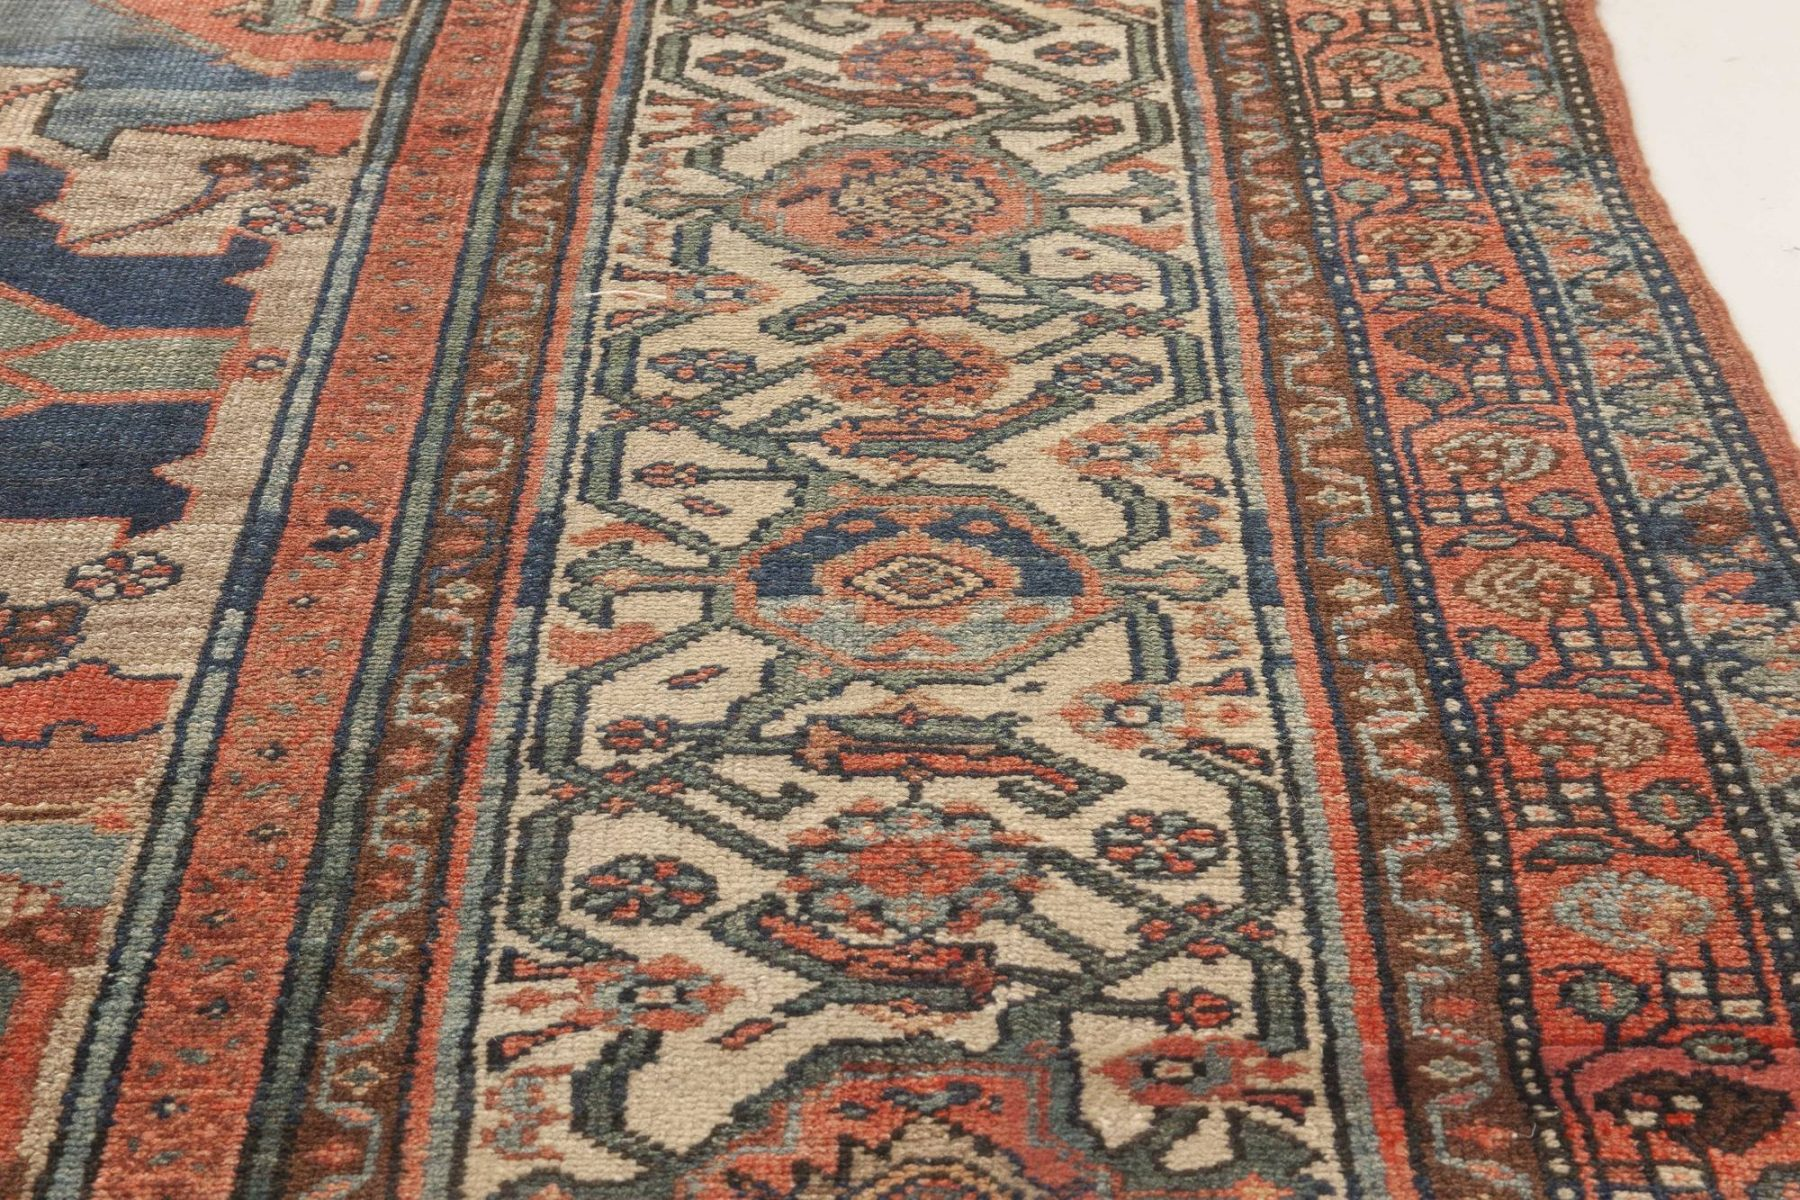 Antique Oversized Beige, Red and Blue Persian Malayer Wool Rug BB4653